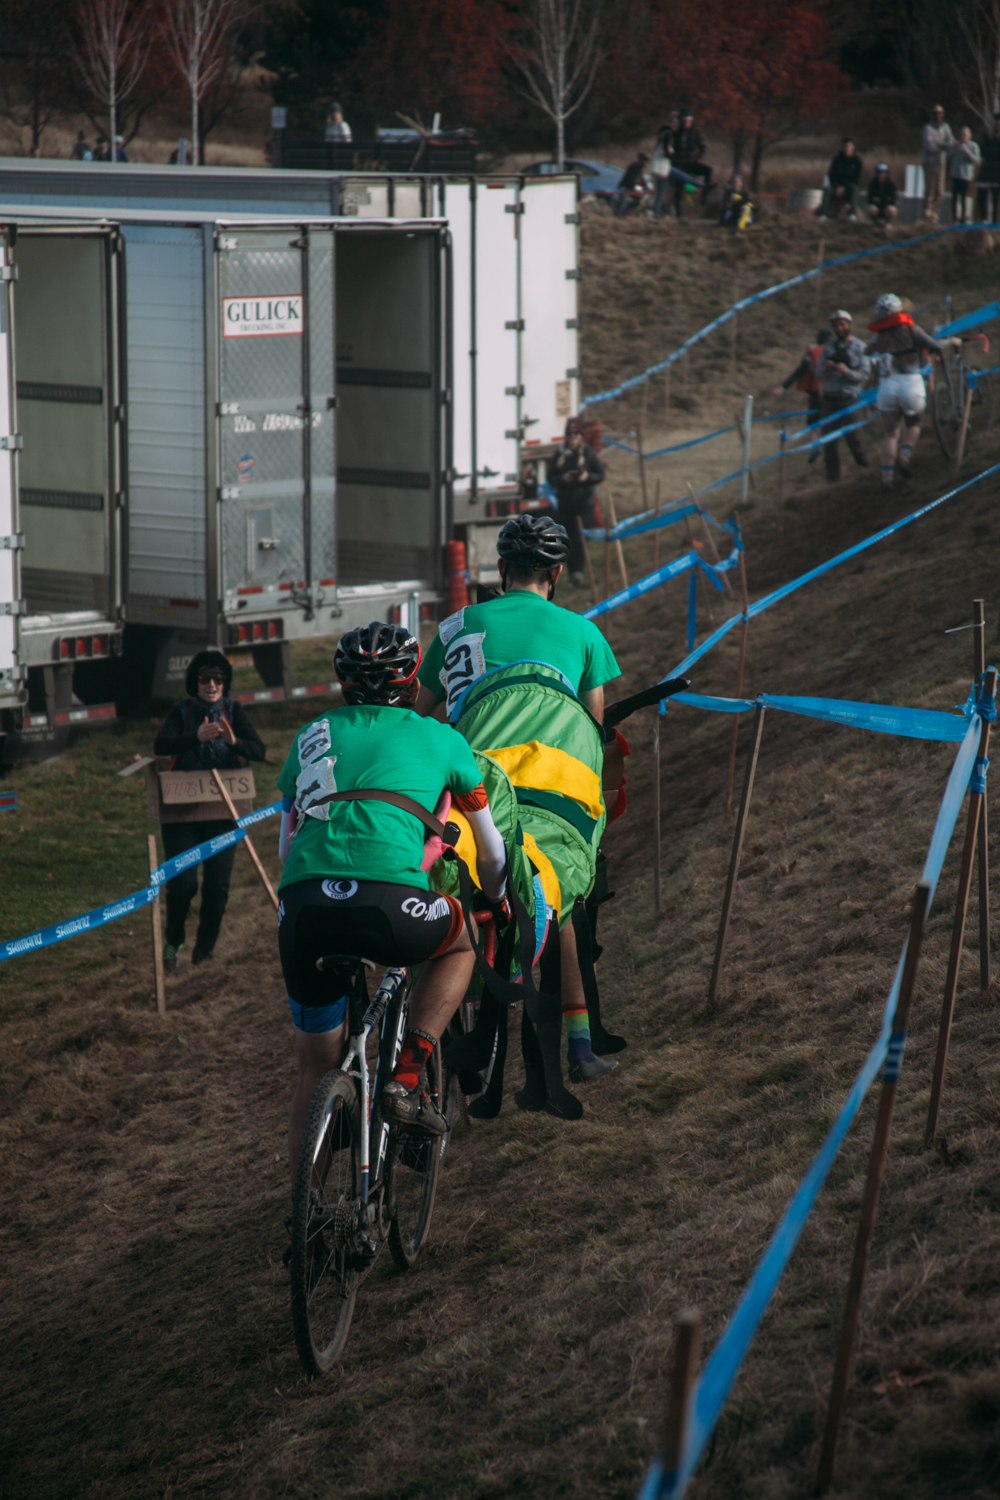 Cyclocross18_CCCX-Bend-Day2-163-fransencomesalive.jpg